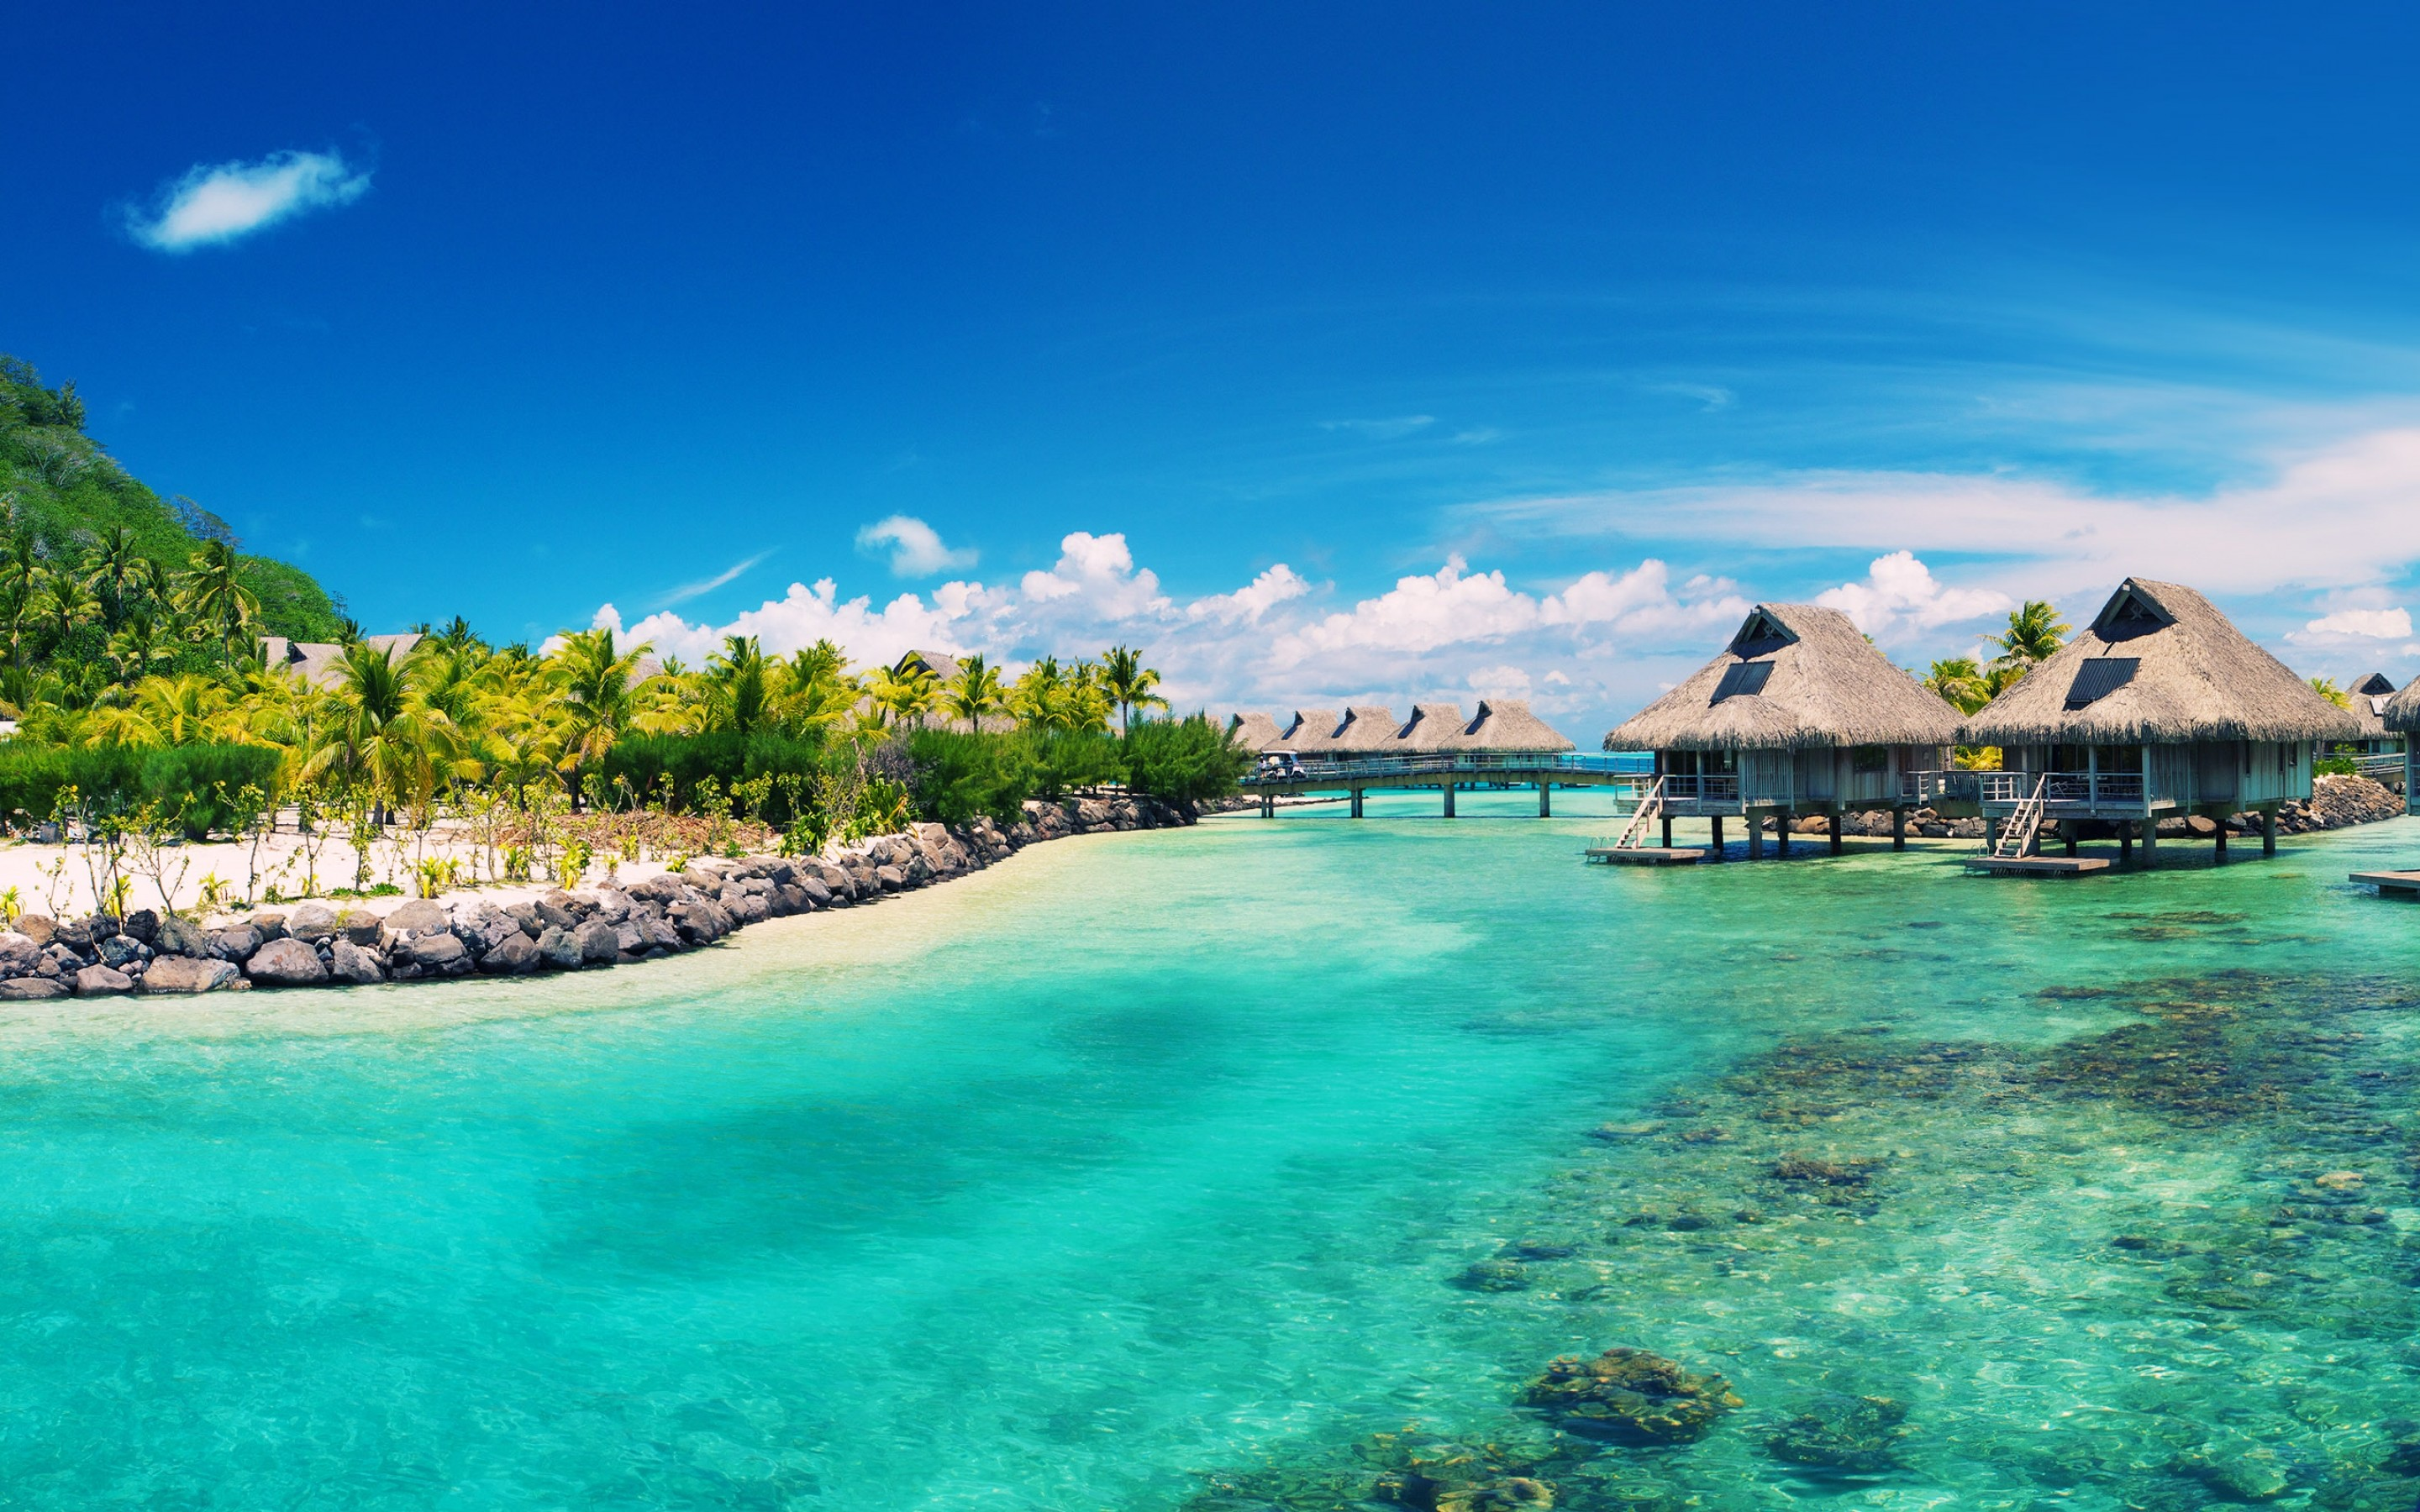 2880x1800 Caribbean HD Wallpaper.